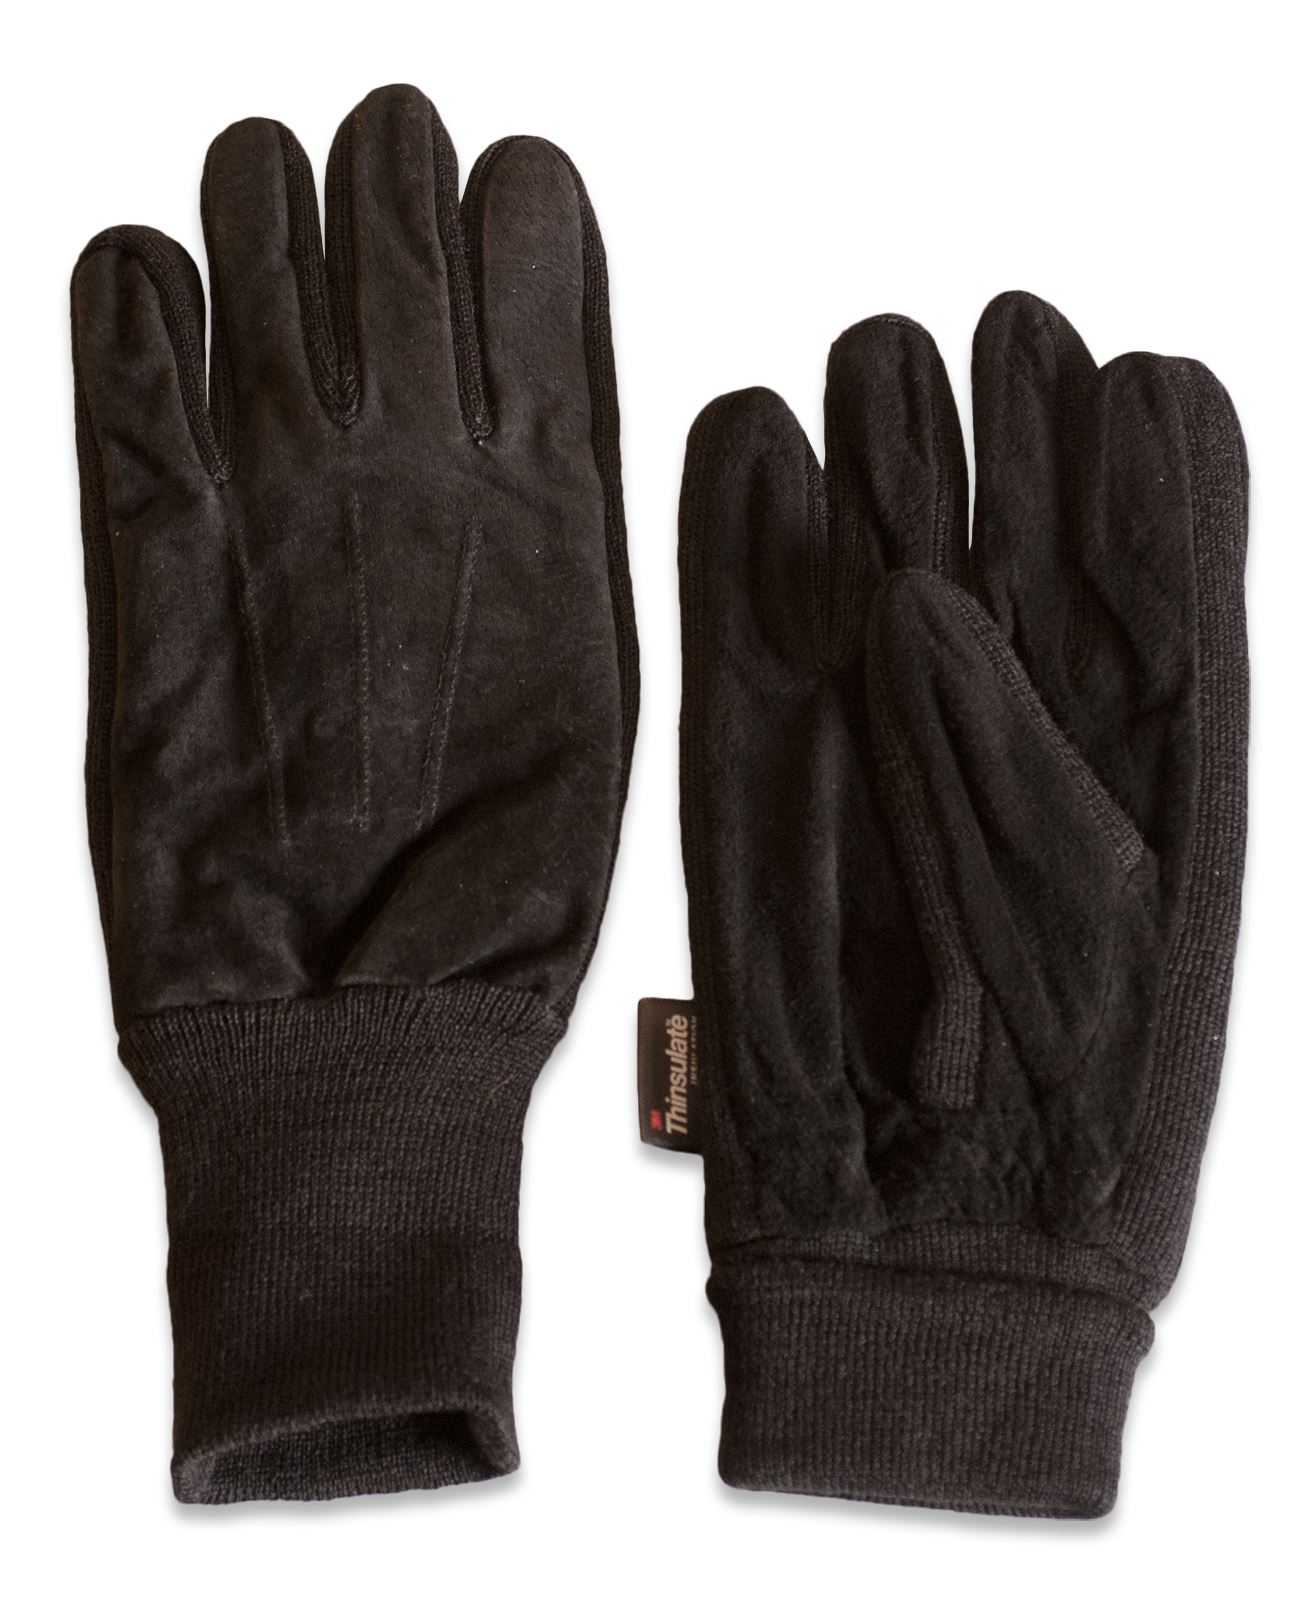 Ladies leather gloves with thinsulate - Quivano Womens Real Suede Leather Gloves Thinsulate Lined